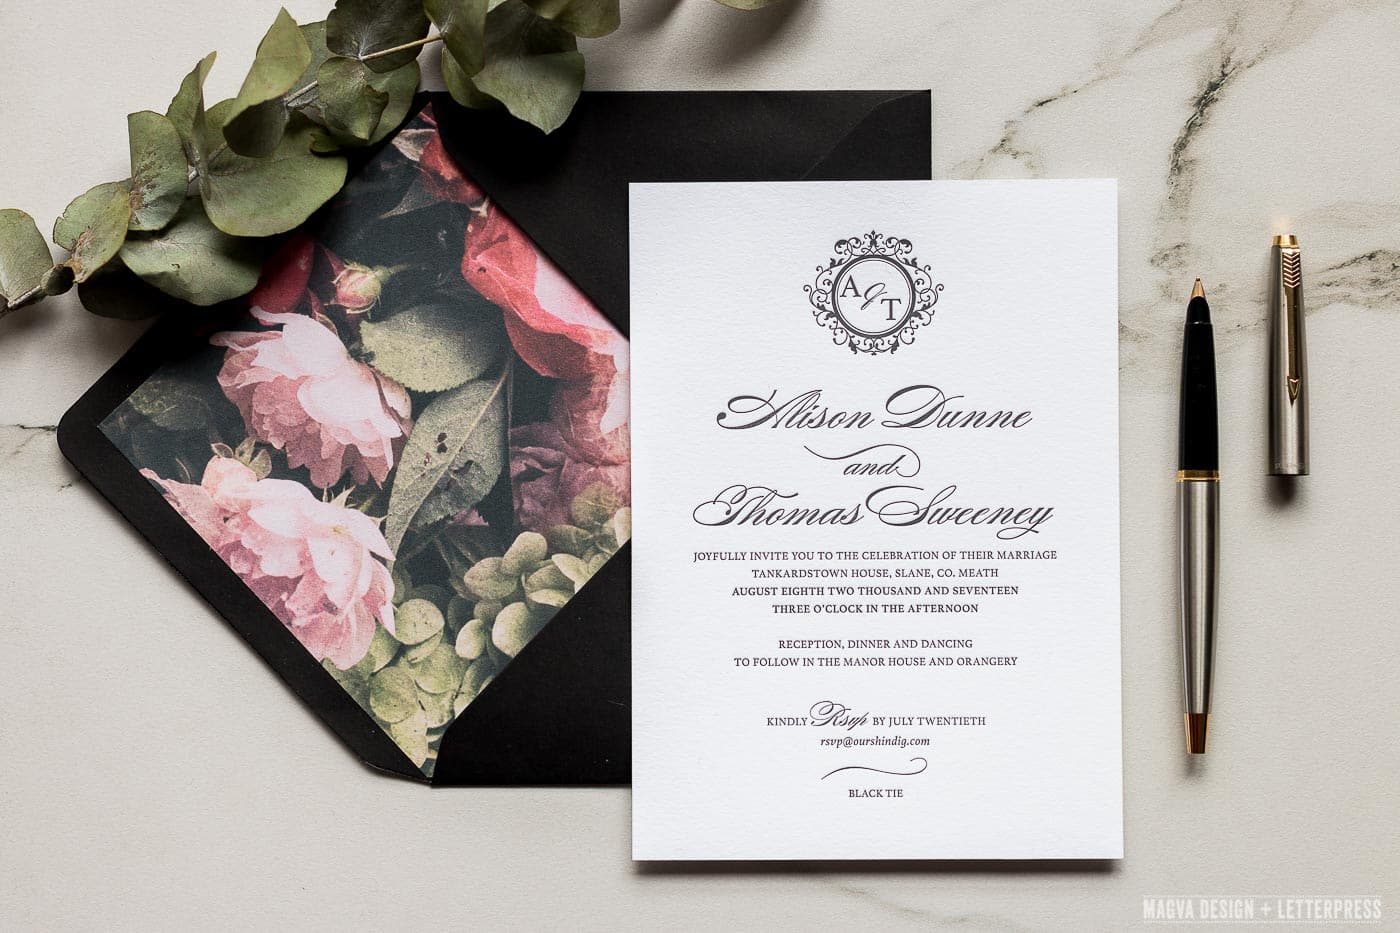 Black Tie - MAGVA Design + Letterpress